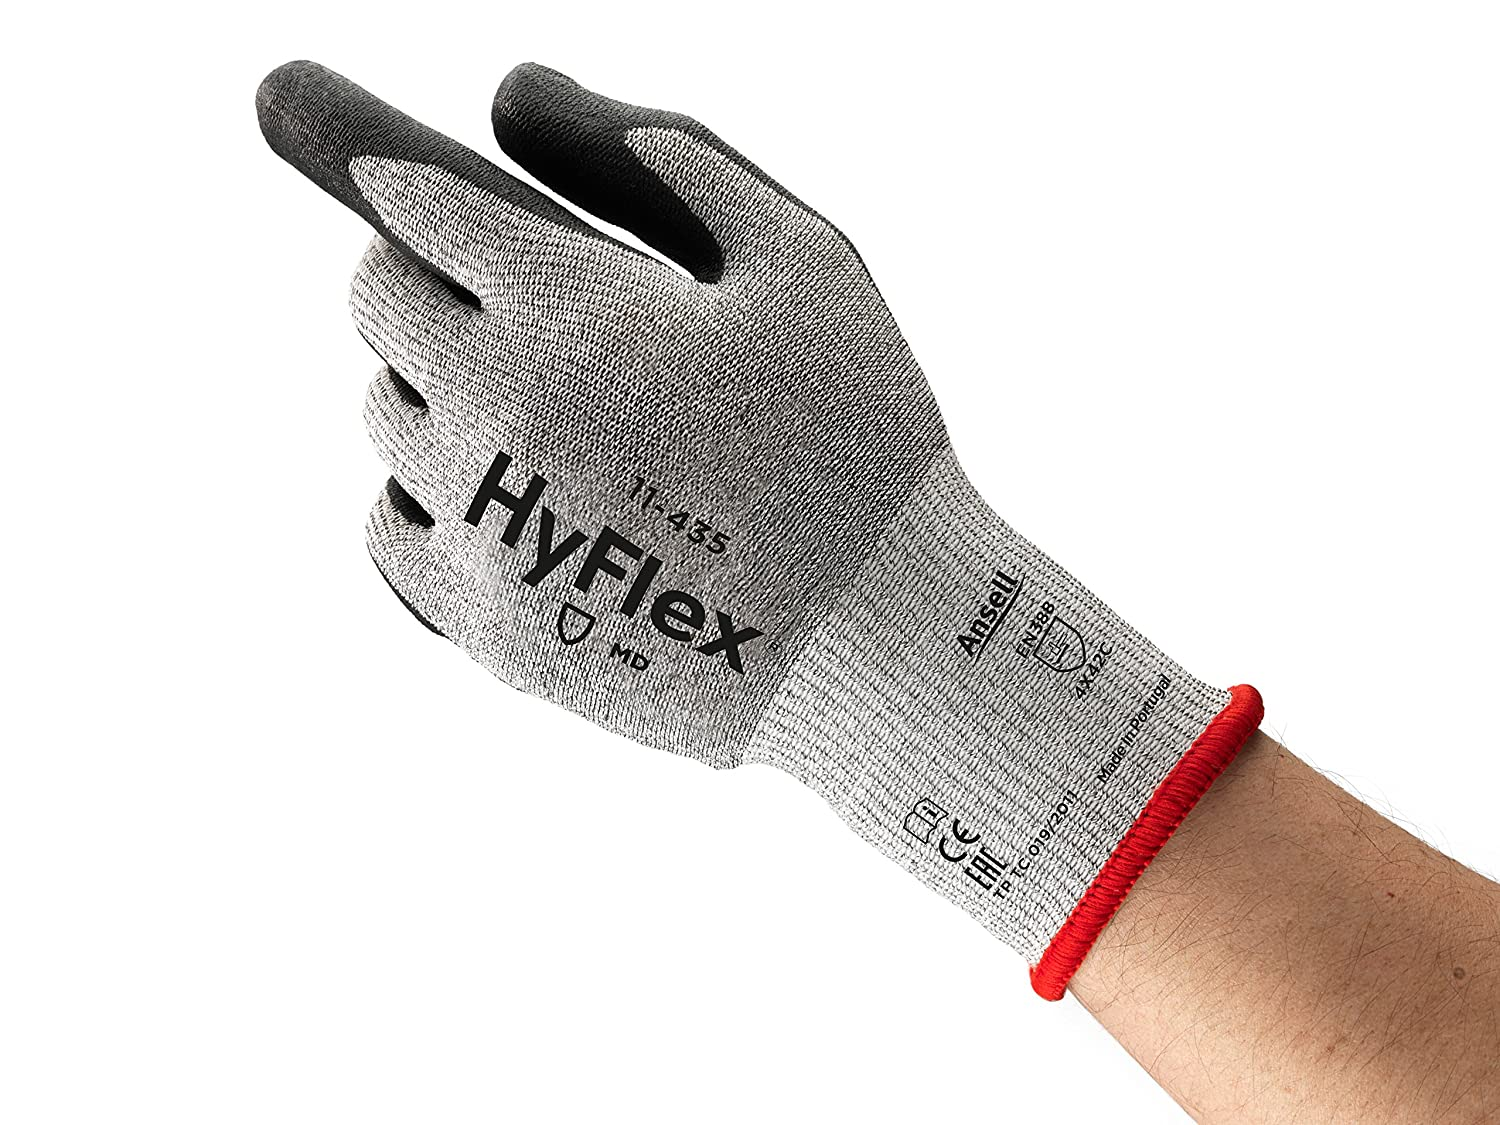 Blue Pack of 12 Pair Ansell HyFlex 11-618 Nylon Light Duty Multi-Purpose Glove with Knitwrist Abrasion//Cut Resistant Size 8